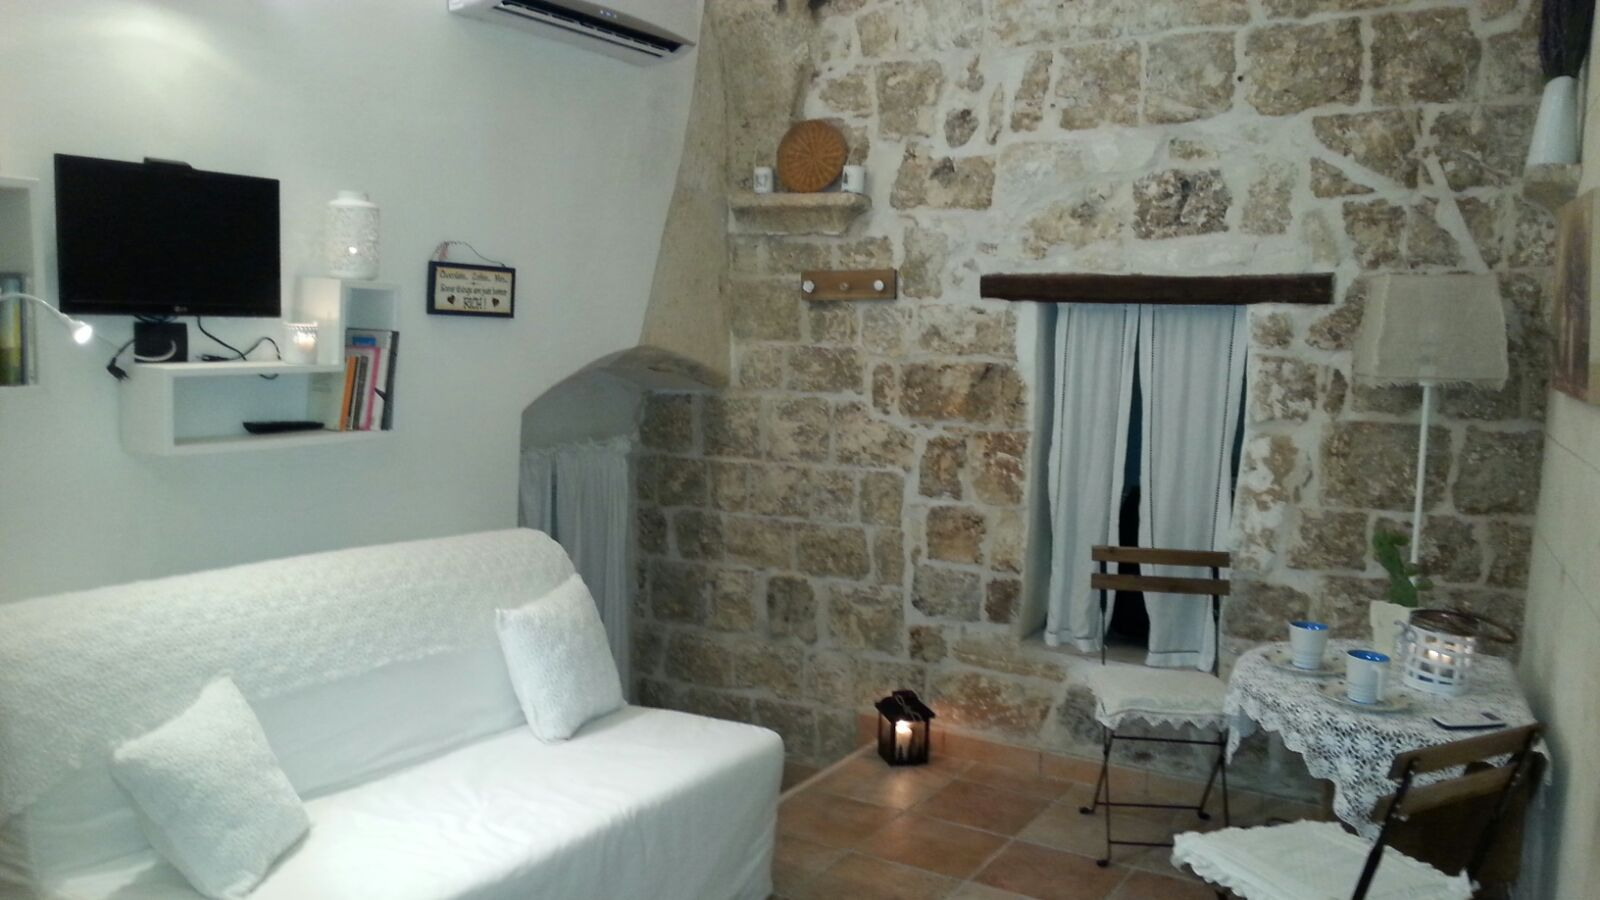 Beautiful detached house set in the rock for Sale in the heart of the historic center of Ostuni